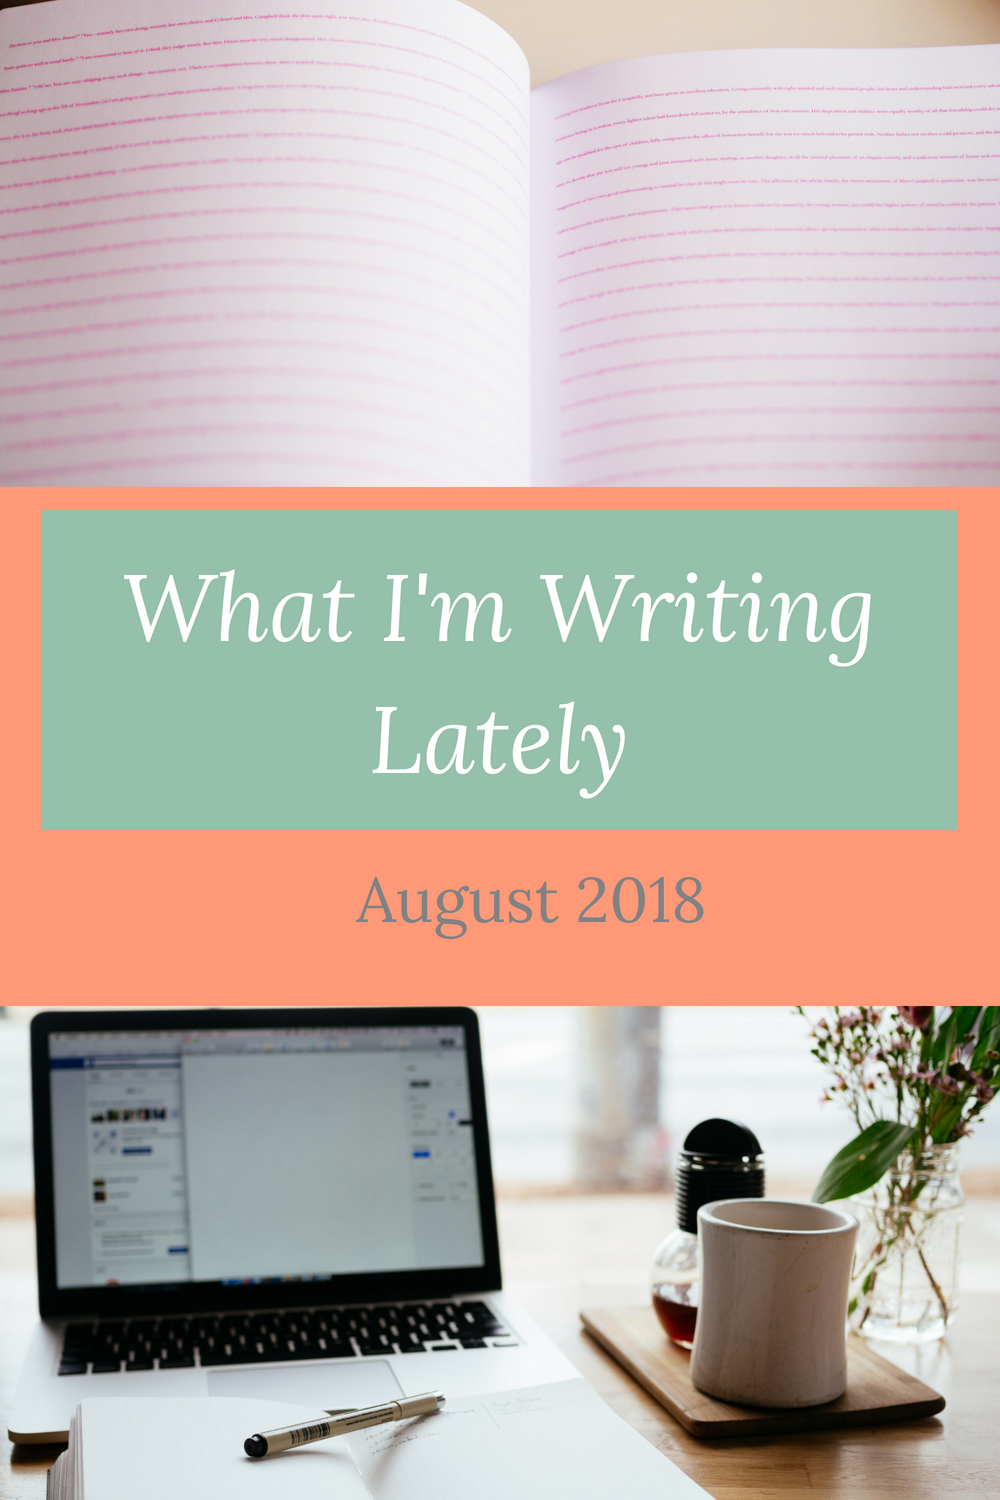 what i'm writing lately - michelle chalkey website